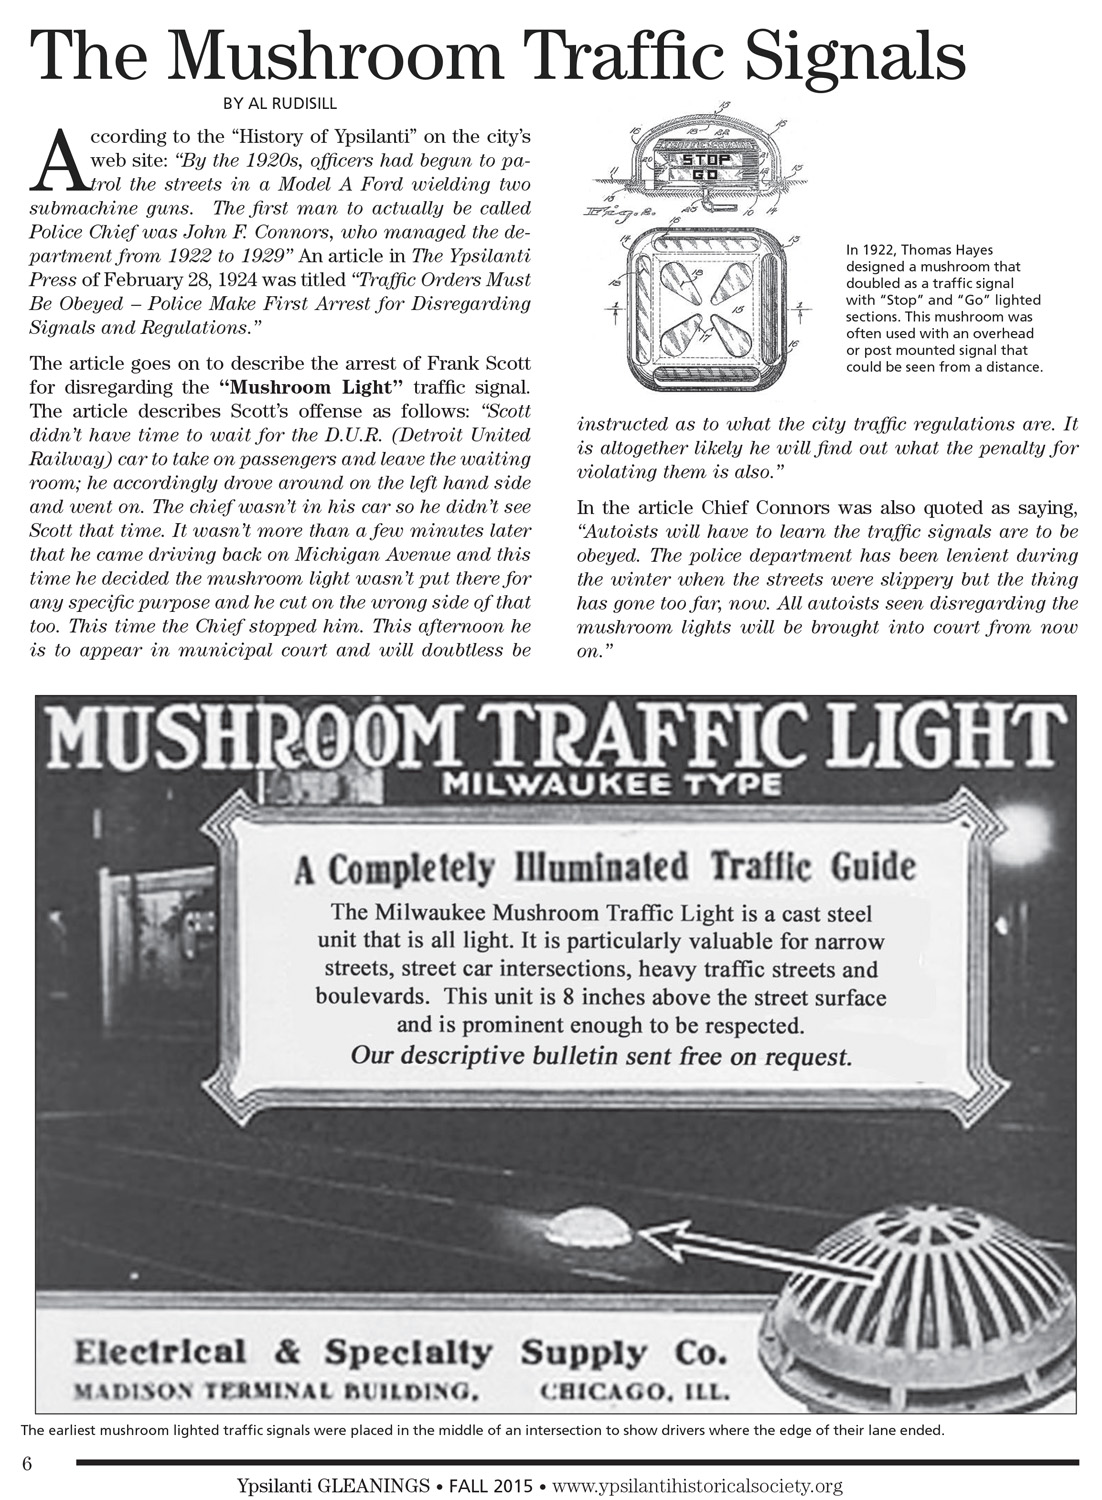 The Mushroom Traffic Signals image